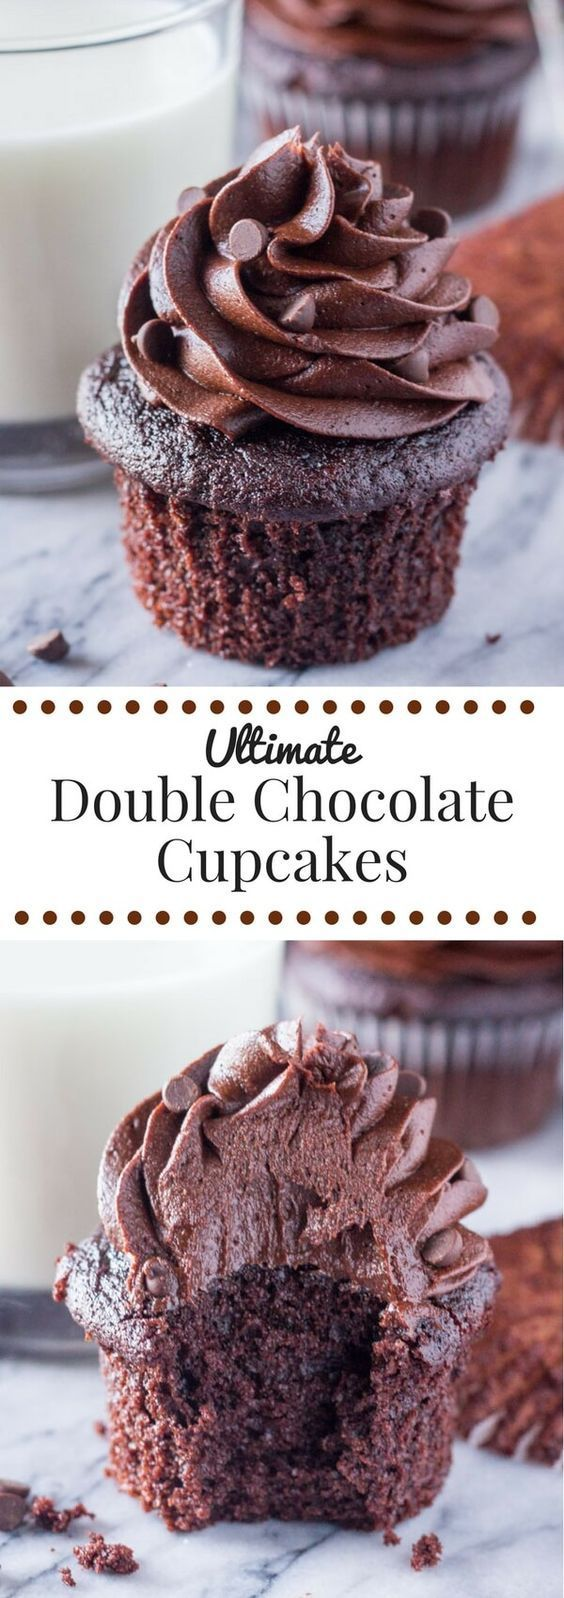 Ultimate Double Chocolate Cupcakes